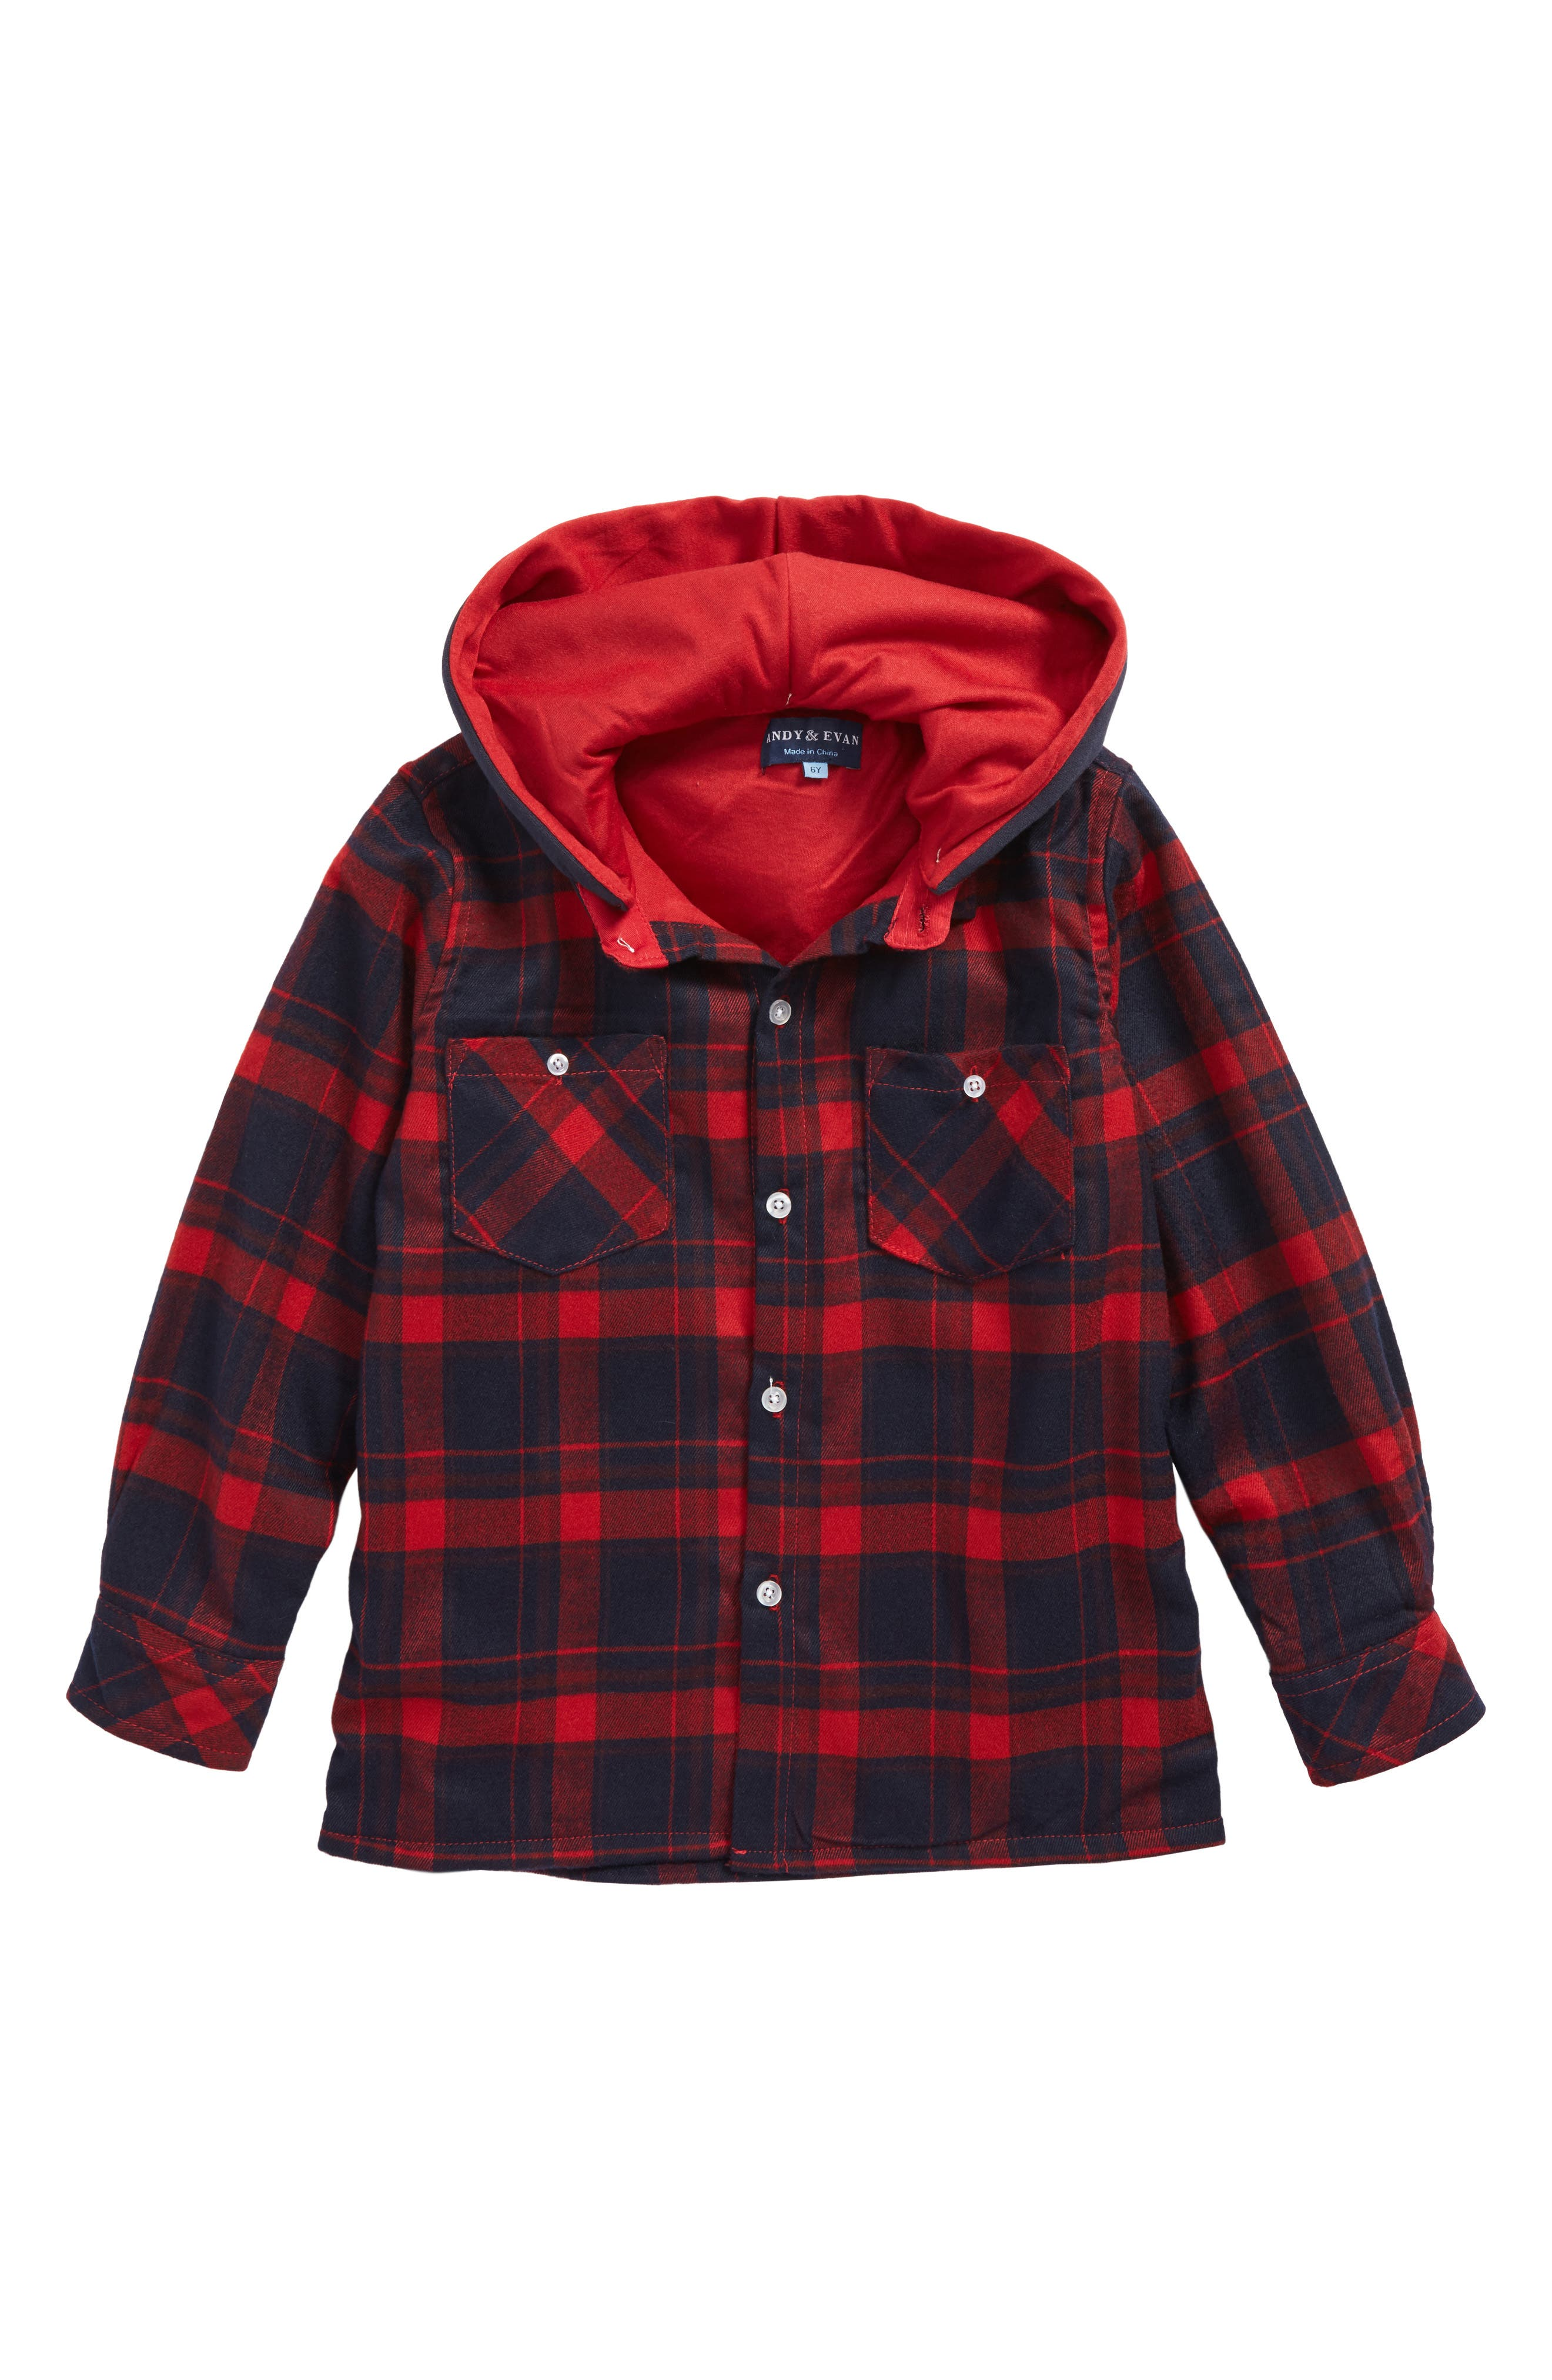 Alternate Image 1 Selected - Andy & Even Hooded Flannel Shirt (Toddler Boys & Little Boys)